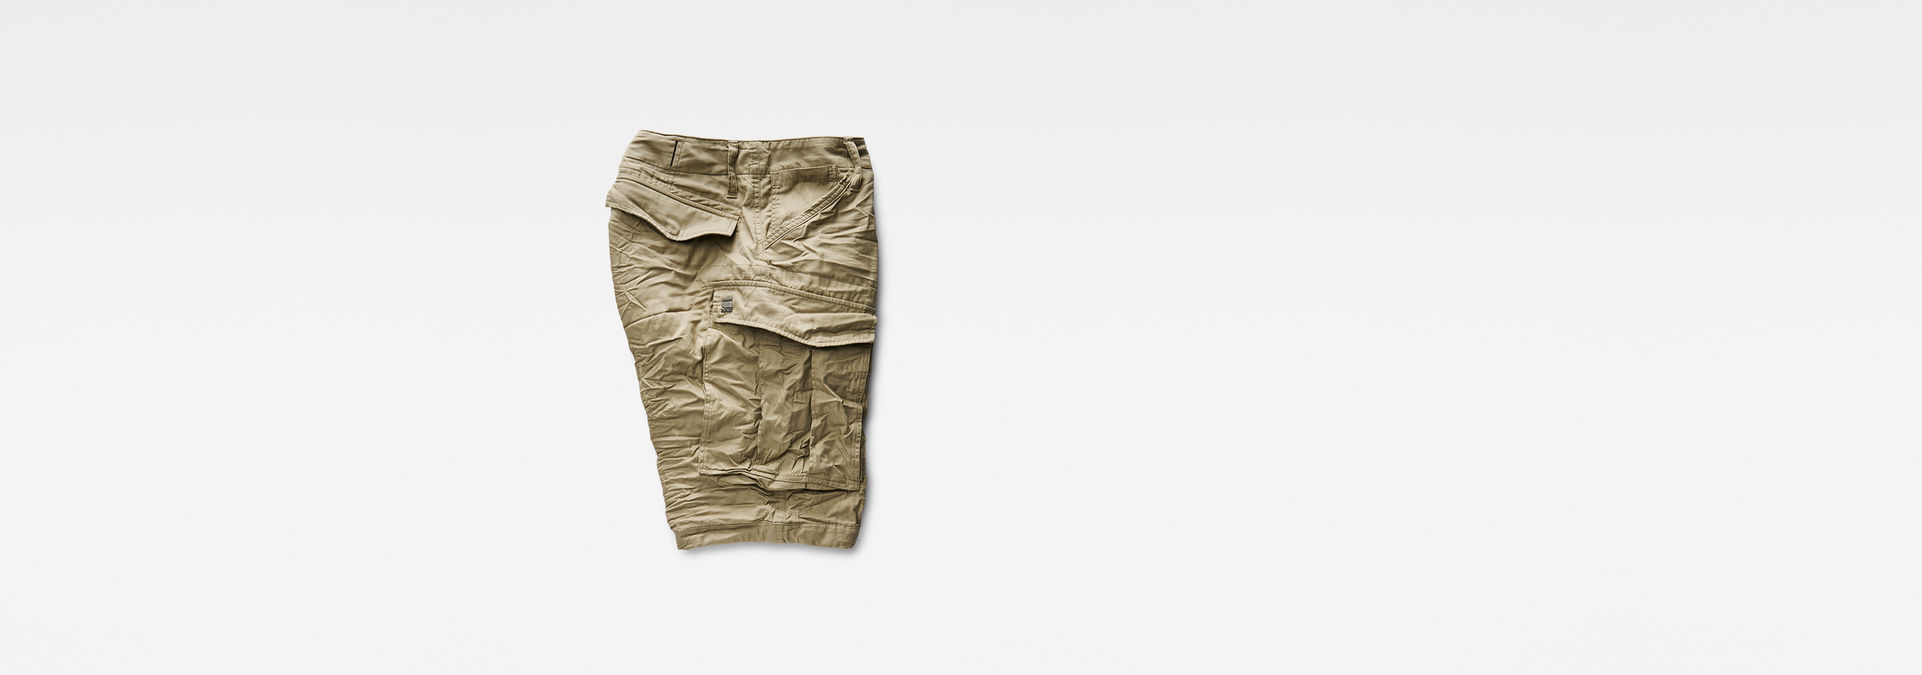 e38d8cdb98 ... G-Star RAW® Rovic Zip 1/2 Shorts Beige flat back